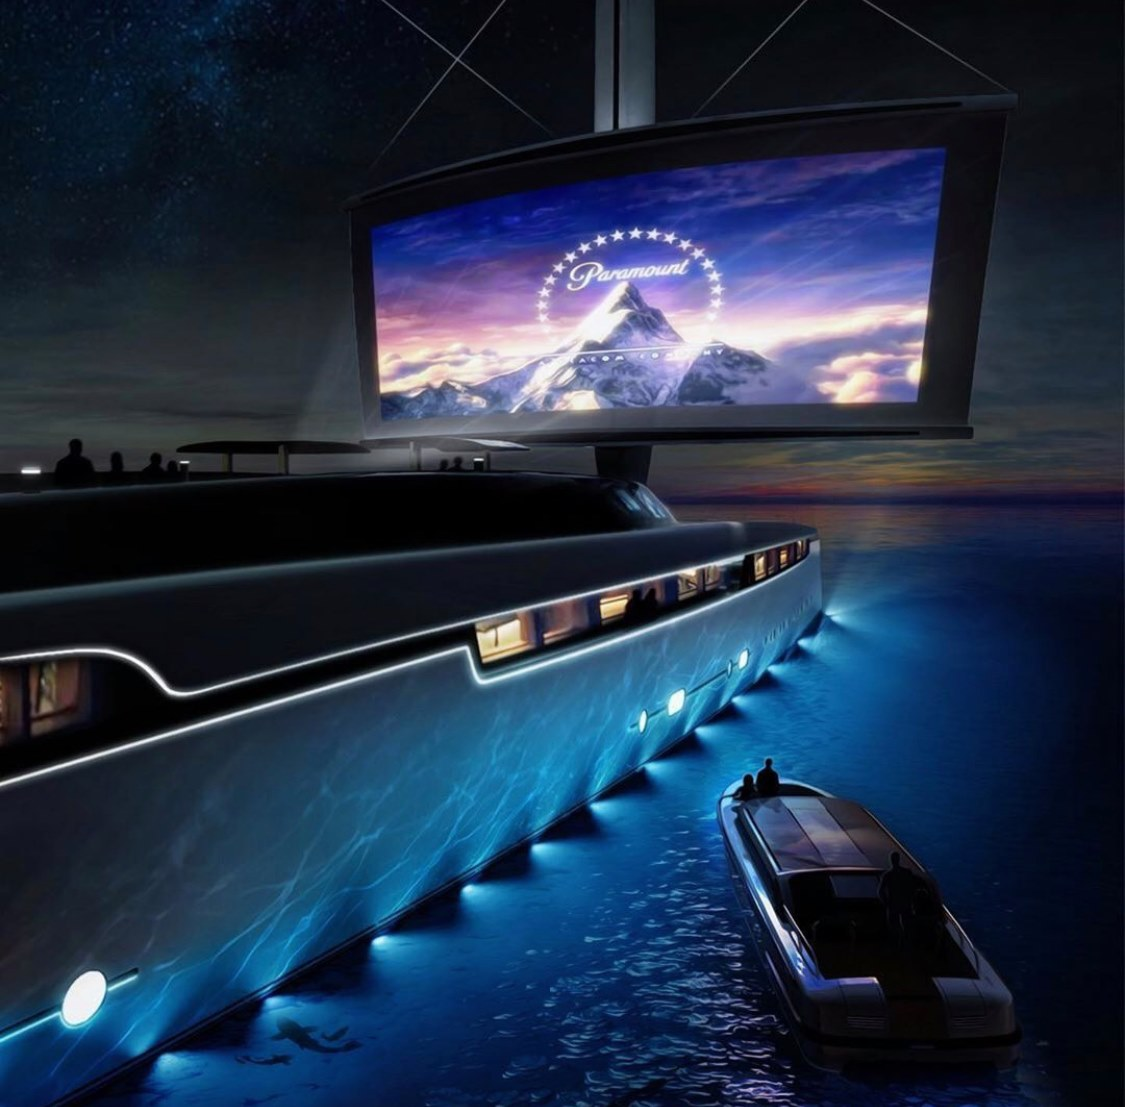 The perfect setup  Which movie would you watch first?   The 88m Project LOTUS with an incredible cinema design by Yacht Intelligence.  @YachtIntell  #projectlotus #superyachttechnology #driveincinema pic.twitter.com/C0utfT6XHc